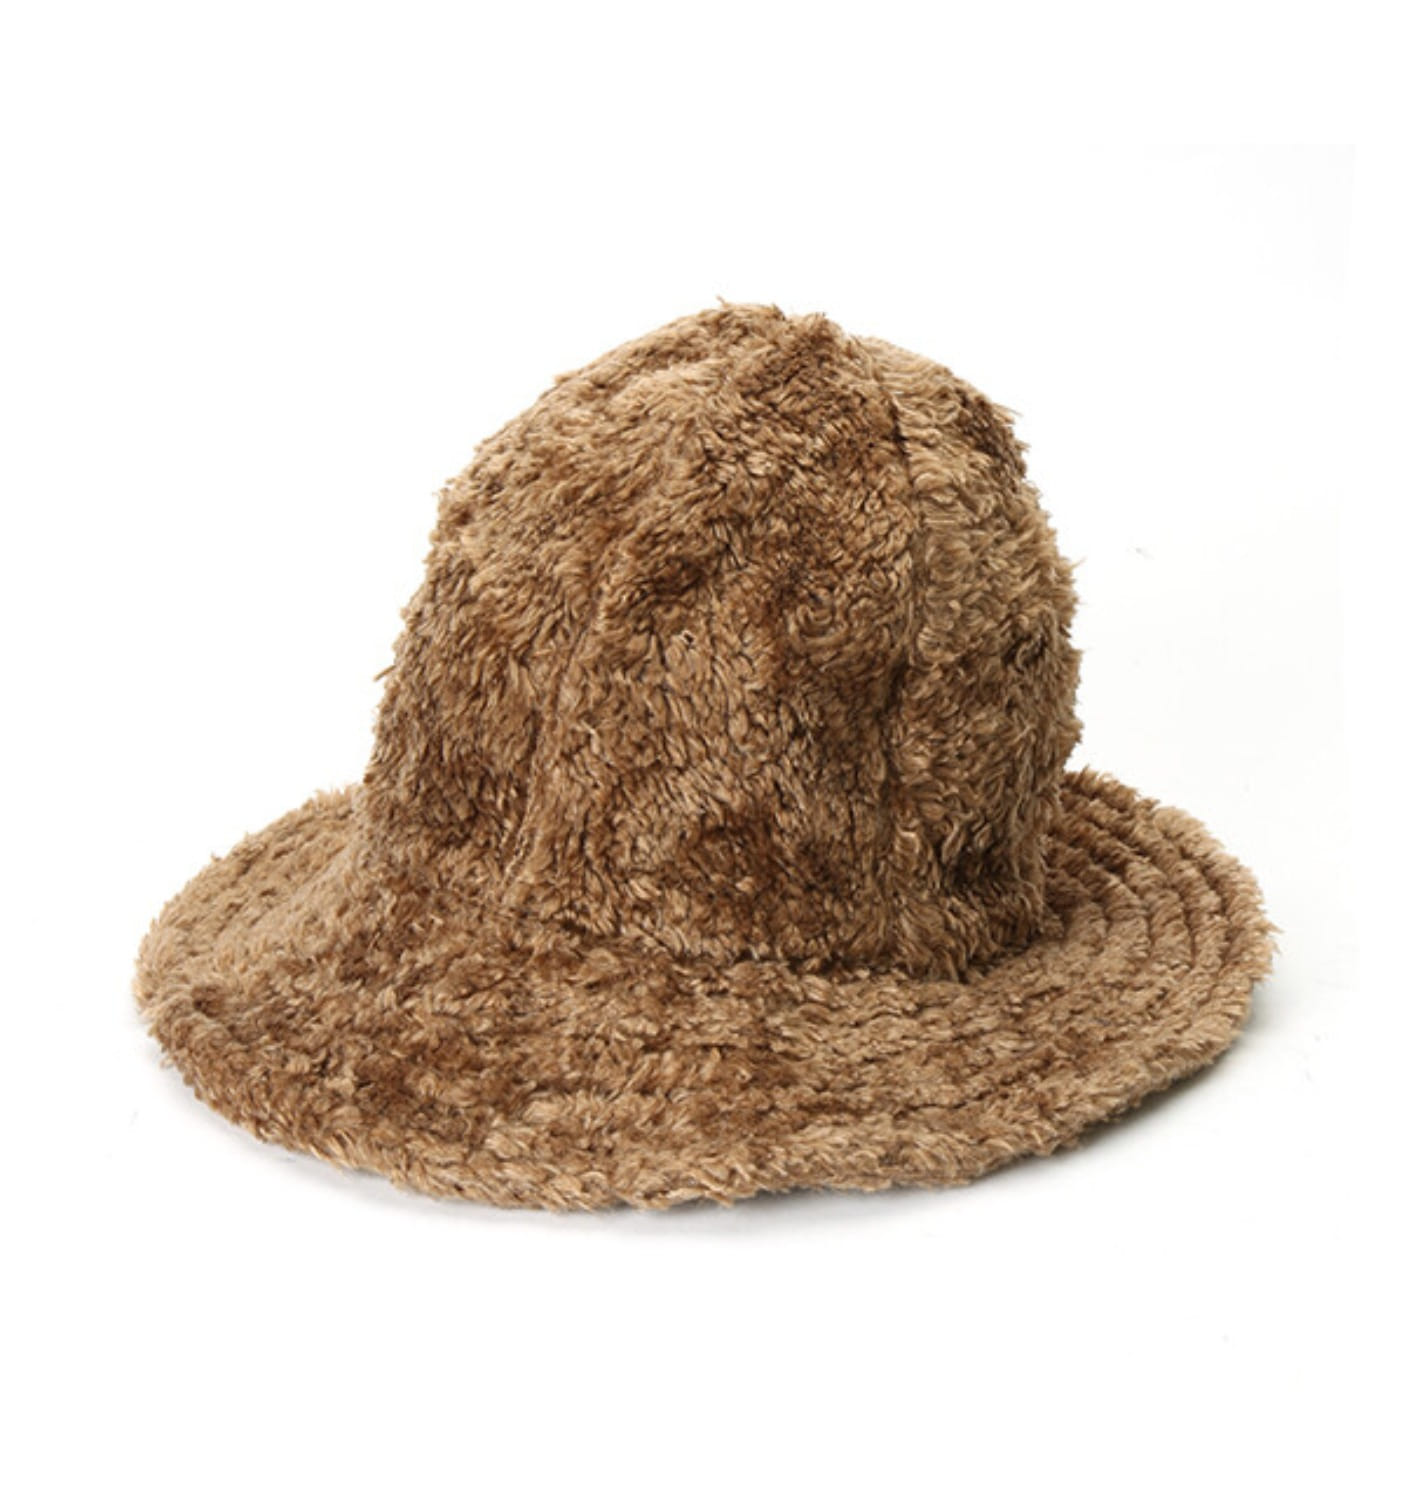 DOME HAT BROWN CURLY